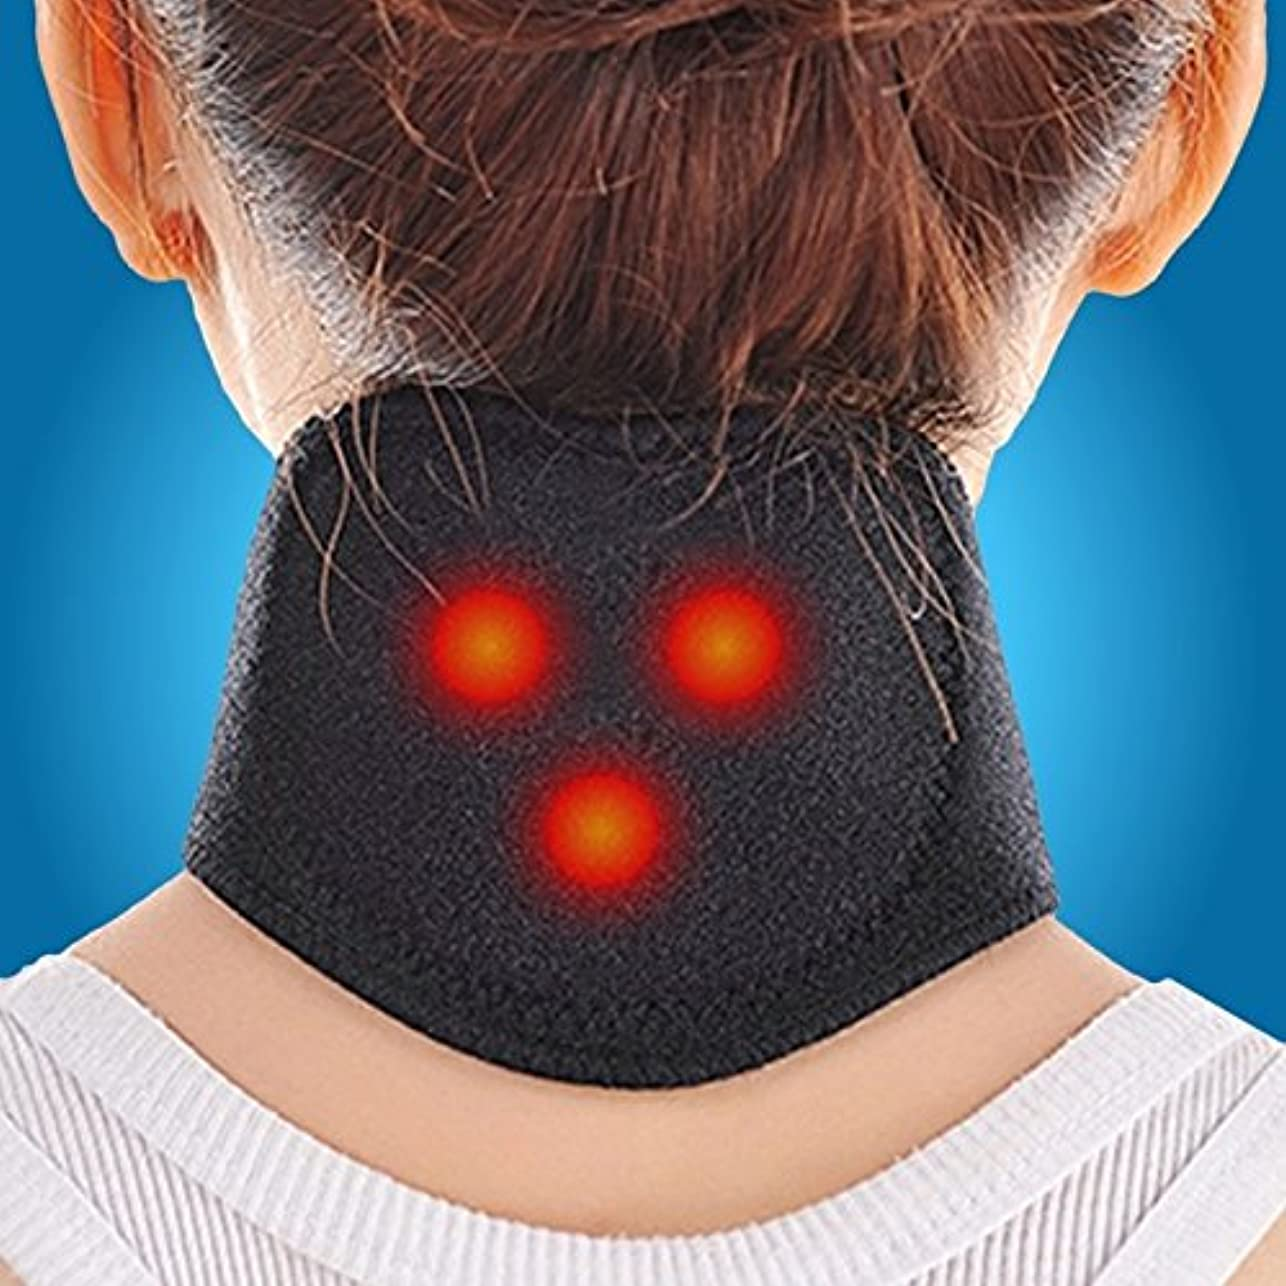 キャベツ肥沃な引っ張るTourmaline Magnetic Therapy Neck Massager Cervical Vertebra Protection Spontaneous Heating Belt Body Massager Face Skin Care Hot